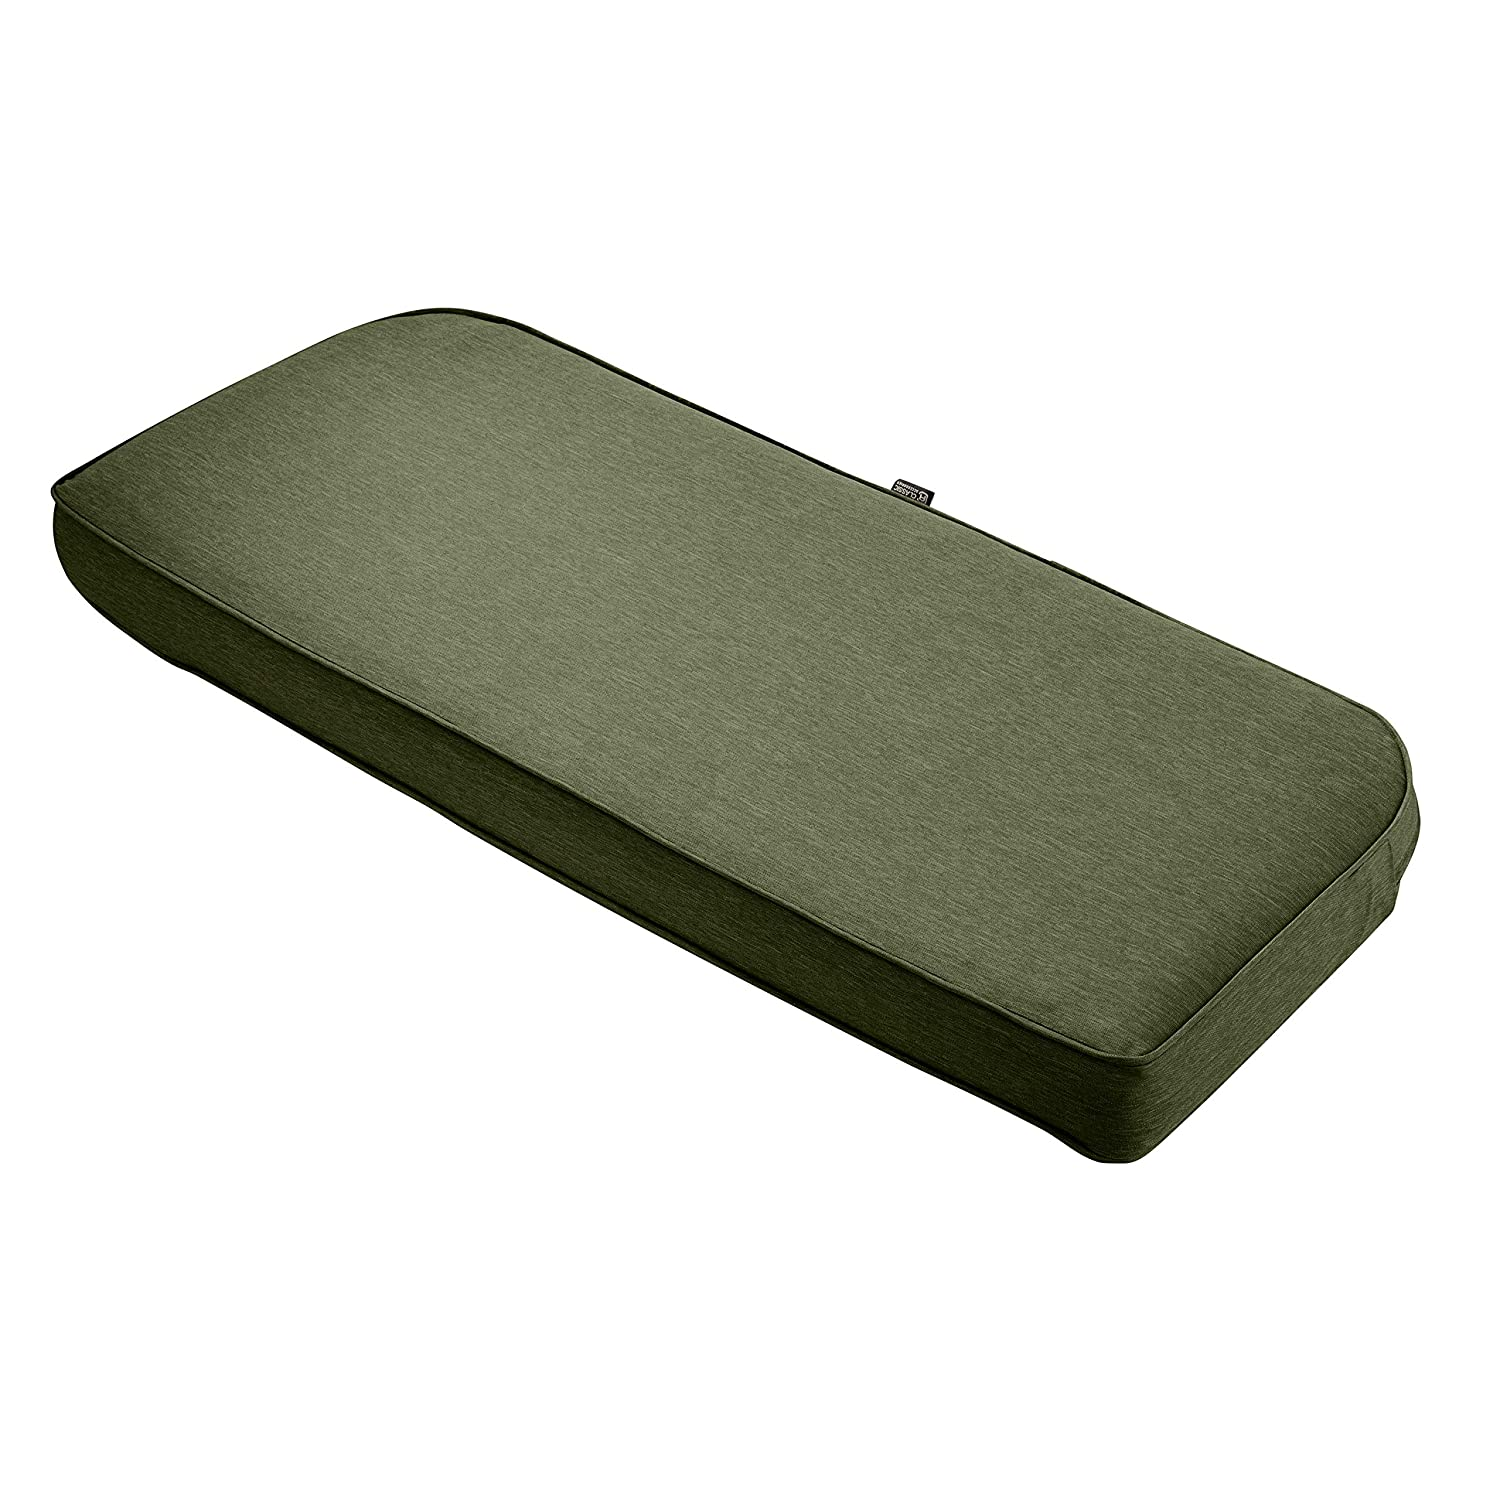 """Classic Accessories Montlake Bench Cont. Cushion Foam & Slip Cover, Heather Fern, 41x18x3"""" Thick"""